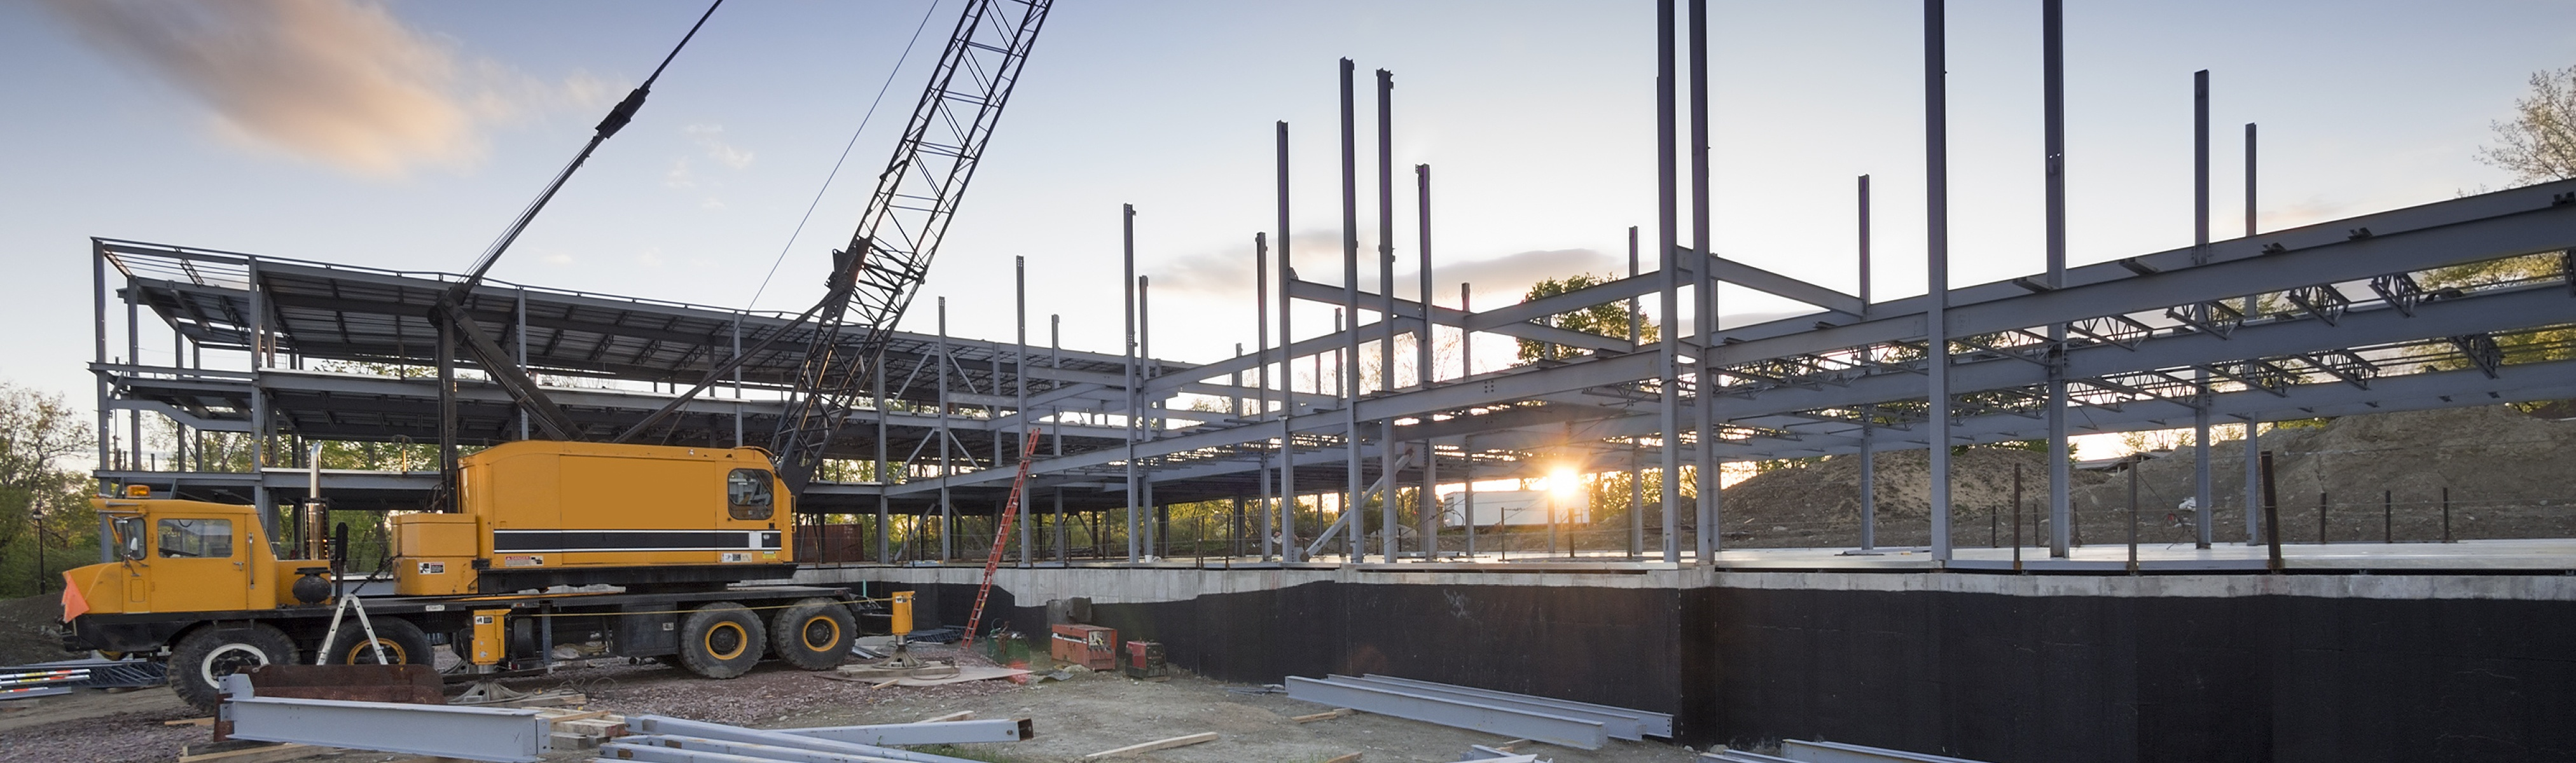 Digital Transformation Still Lags In The Construction Industry – Here's How To Change That